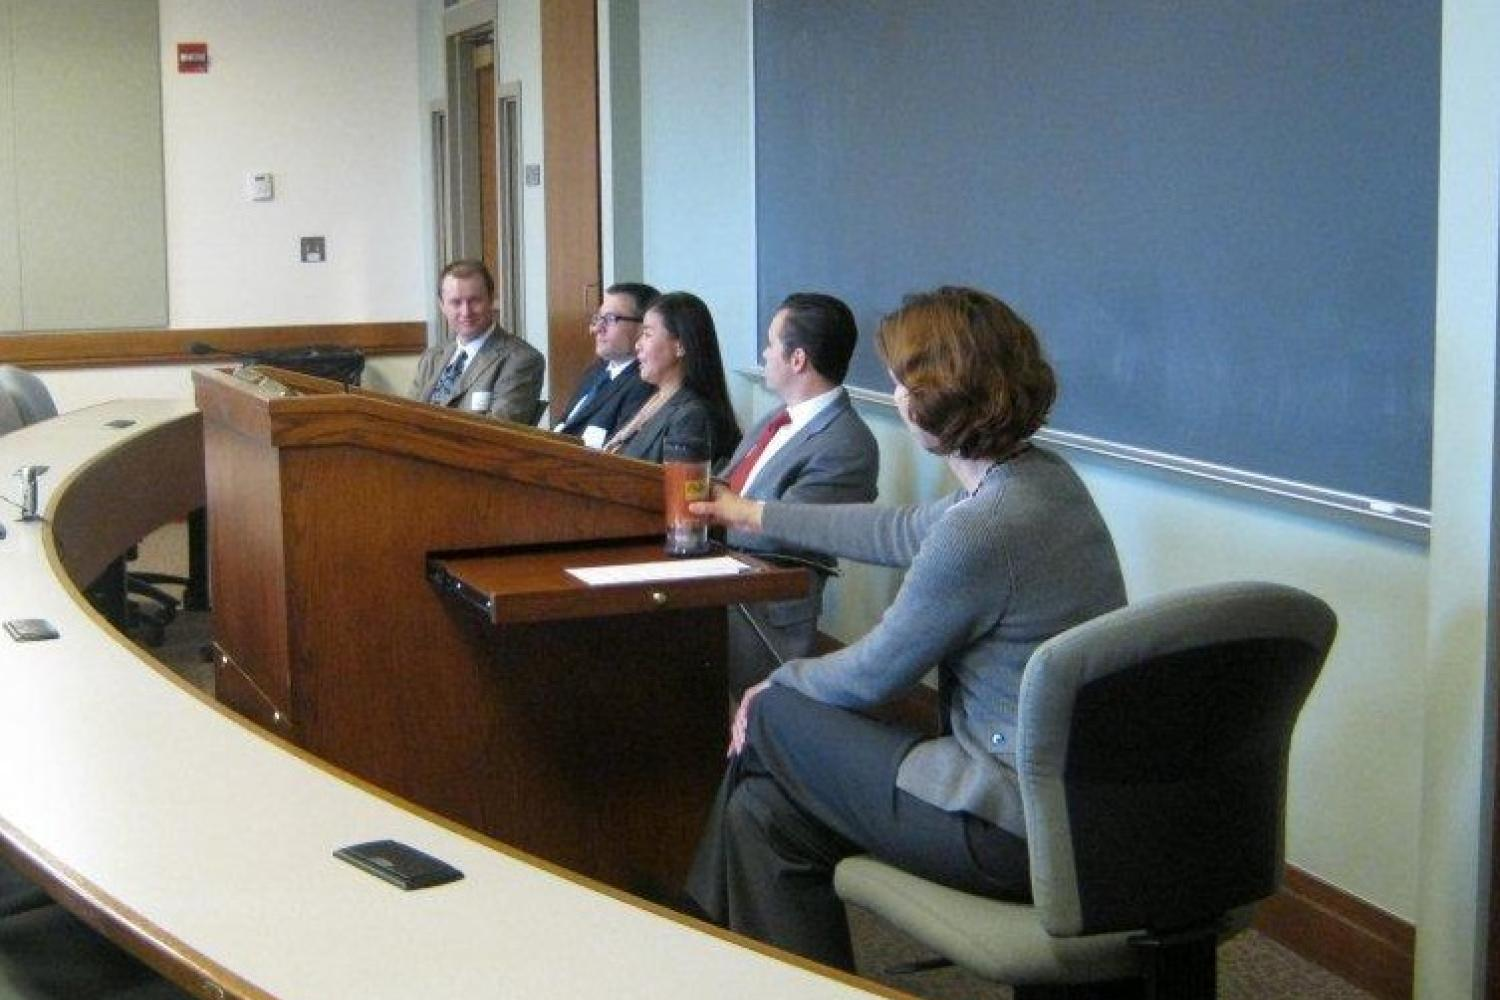 Judge John Madden (Denver District Court), Zach Carlyle (U.S. SEC), Misae Nishikura (Holland & Hart), and Dan McCormick (Kilpatrick Townsend) speak at the Interviewing Tips and Techniques Panel while Jennifer Winslow moderates.